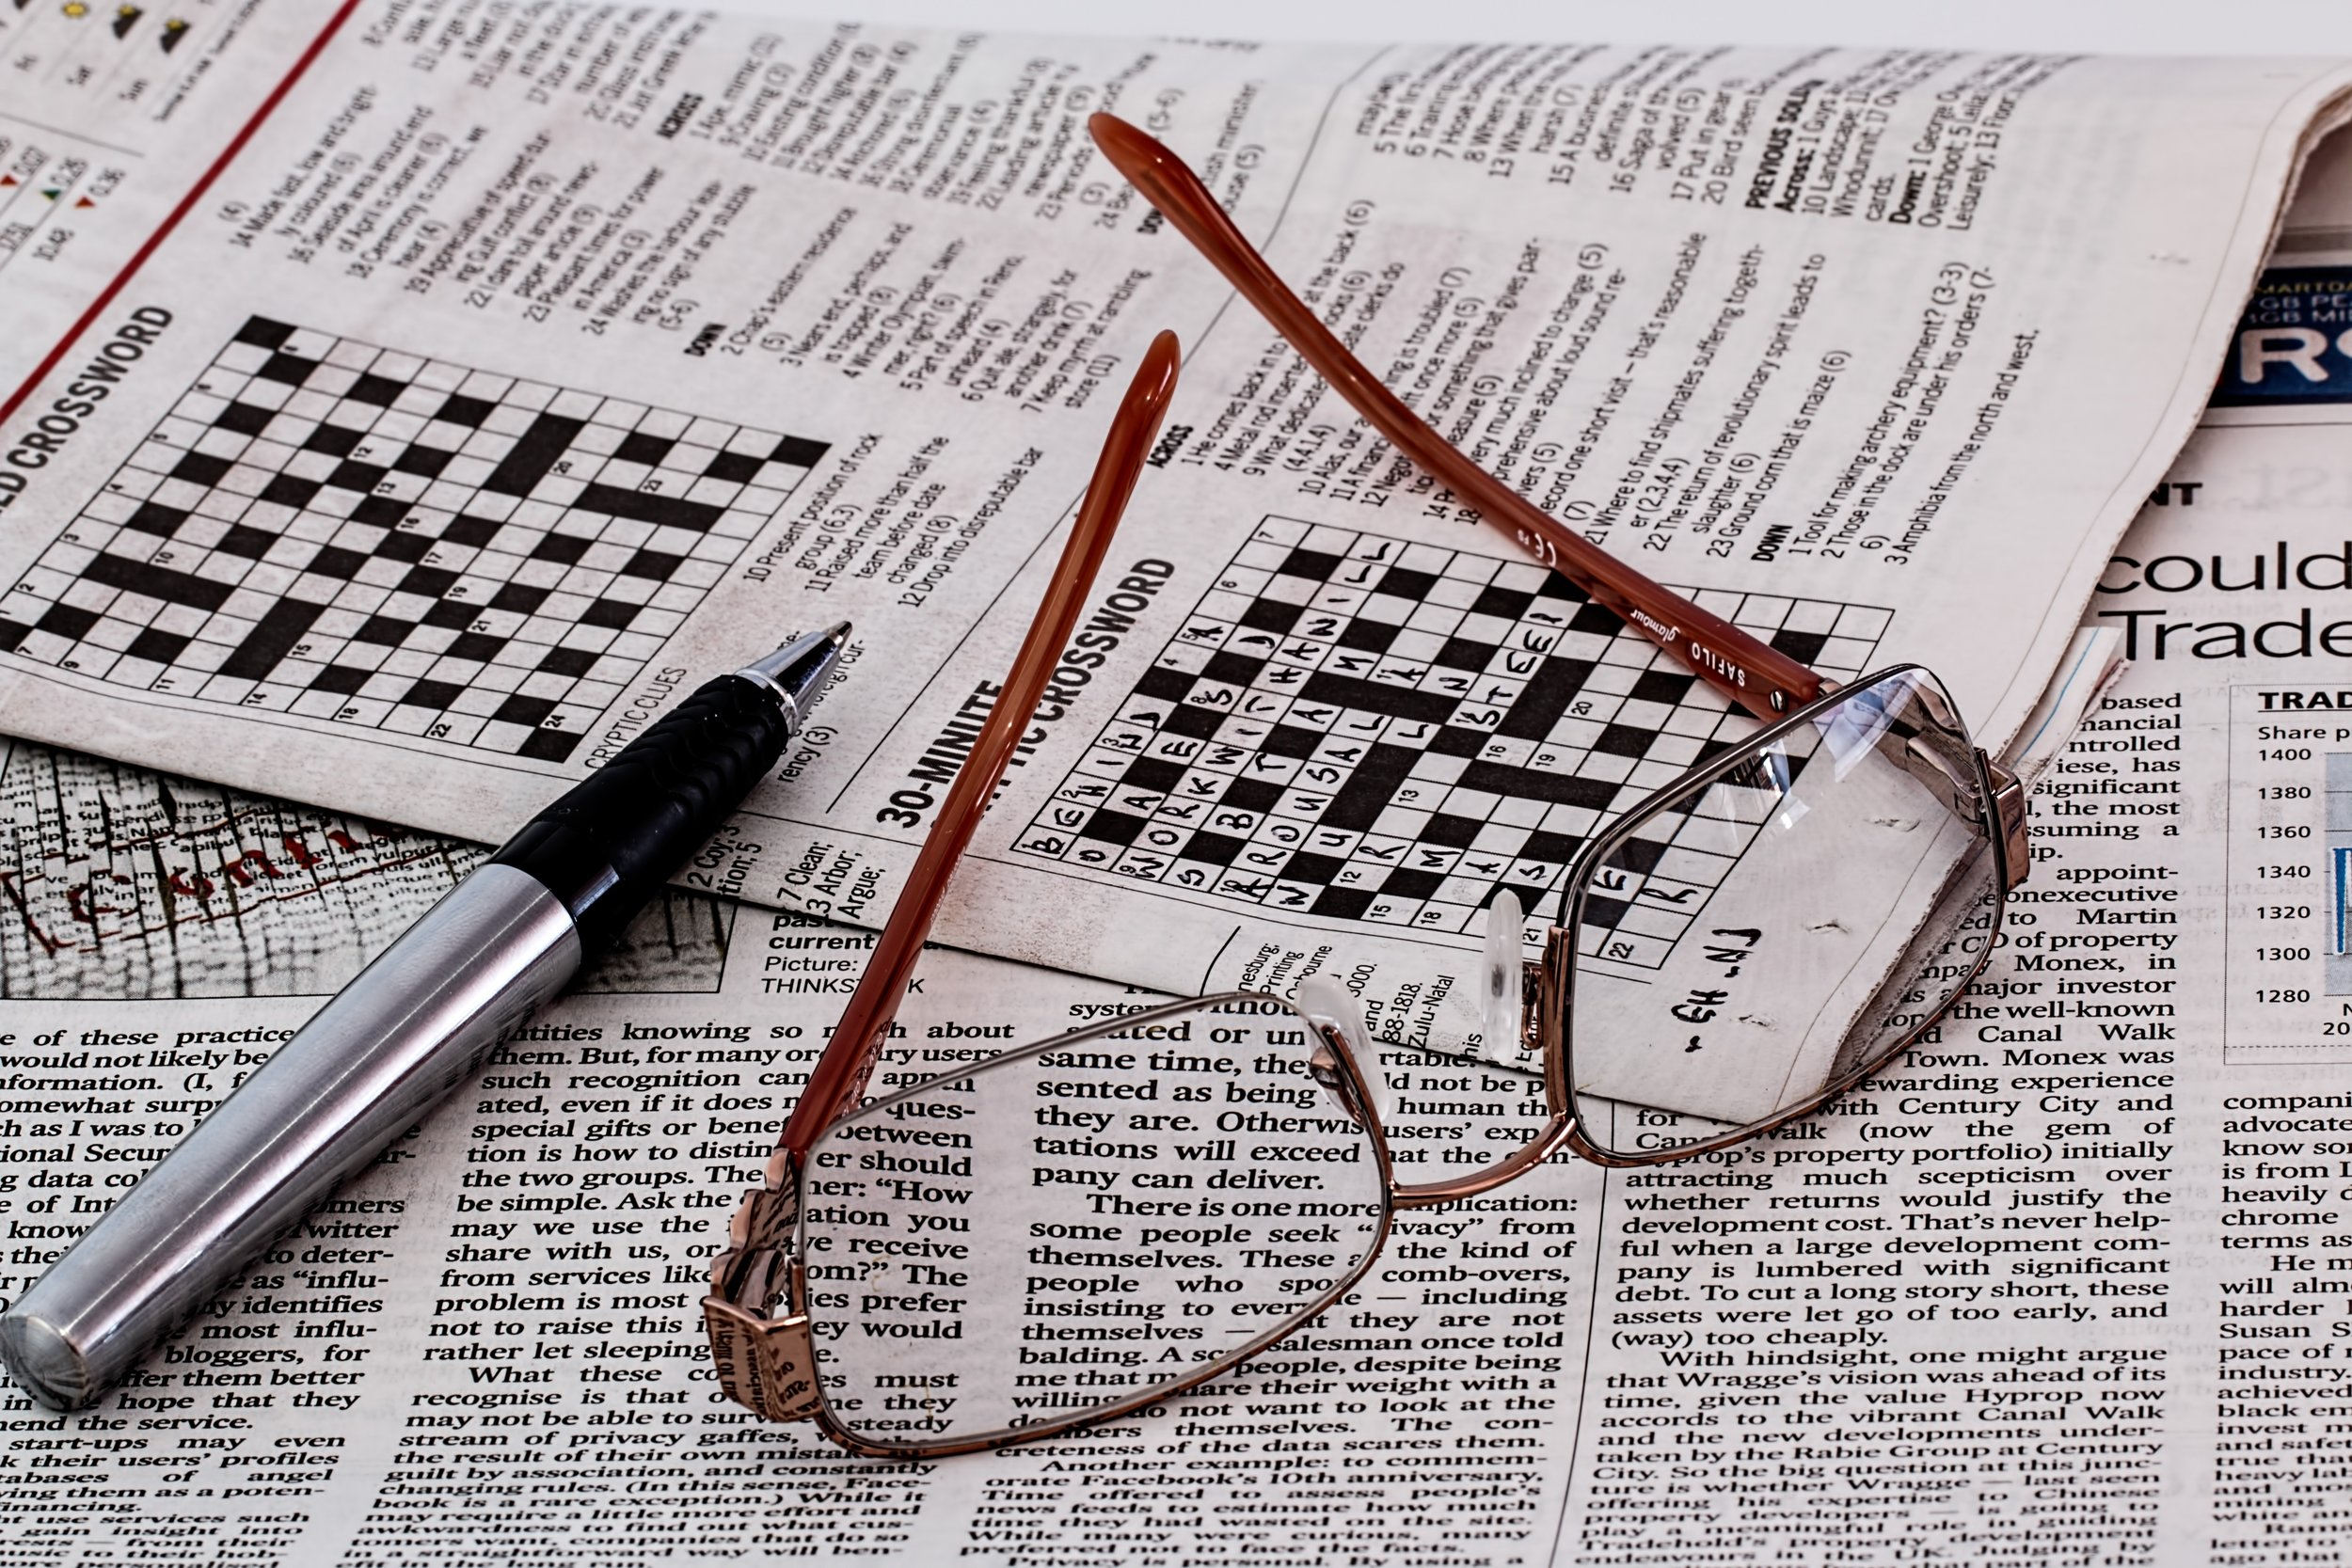 crossword-eyeglasses-eyewear-53209.jpg